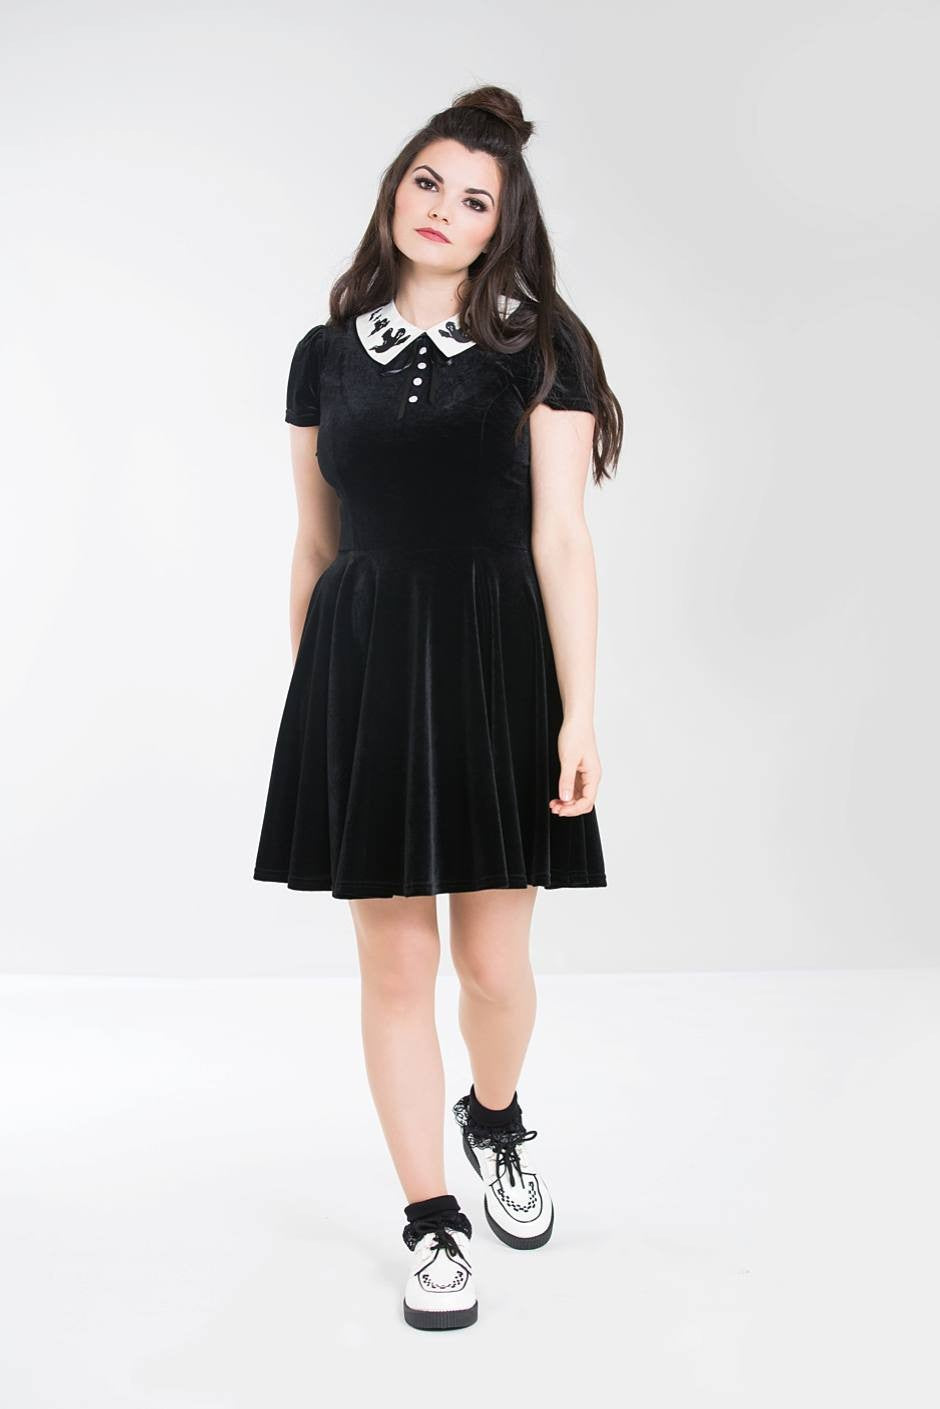 Hell Bunny Casper Mini Dress - Kate's Clothing